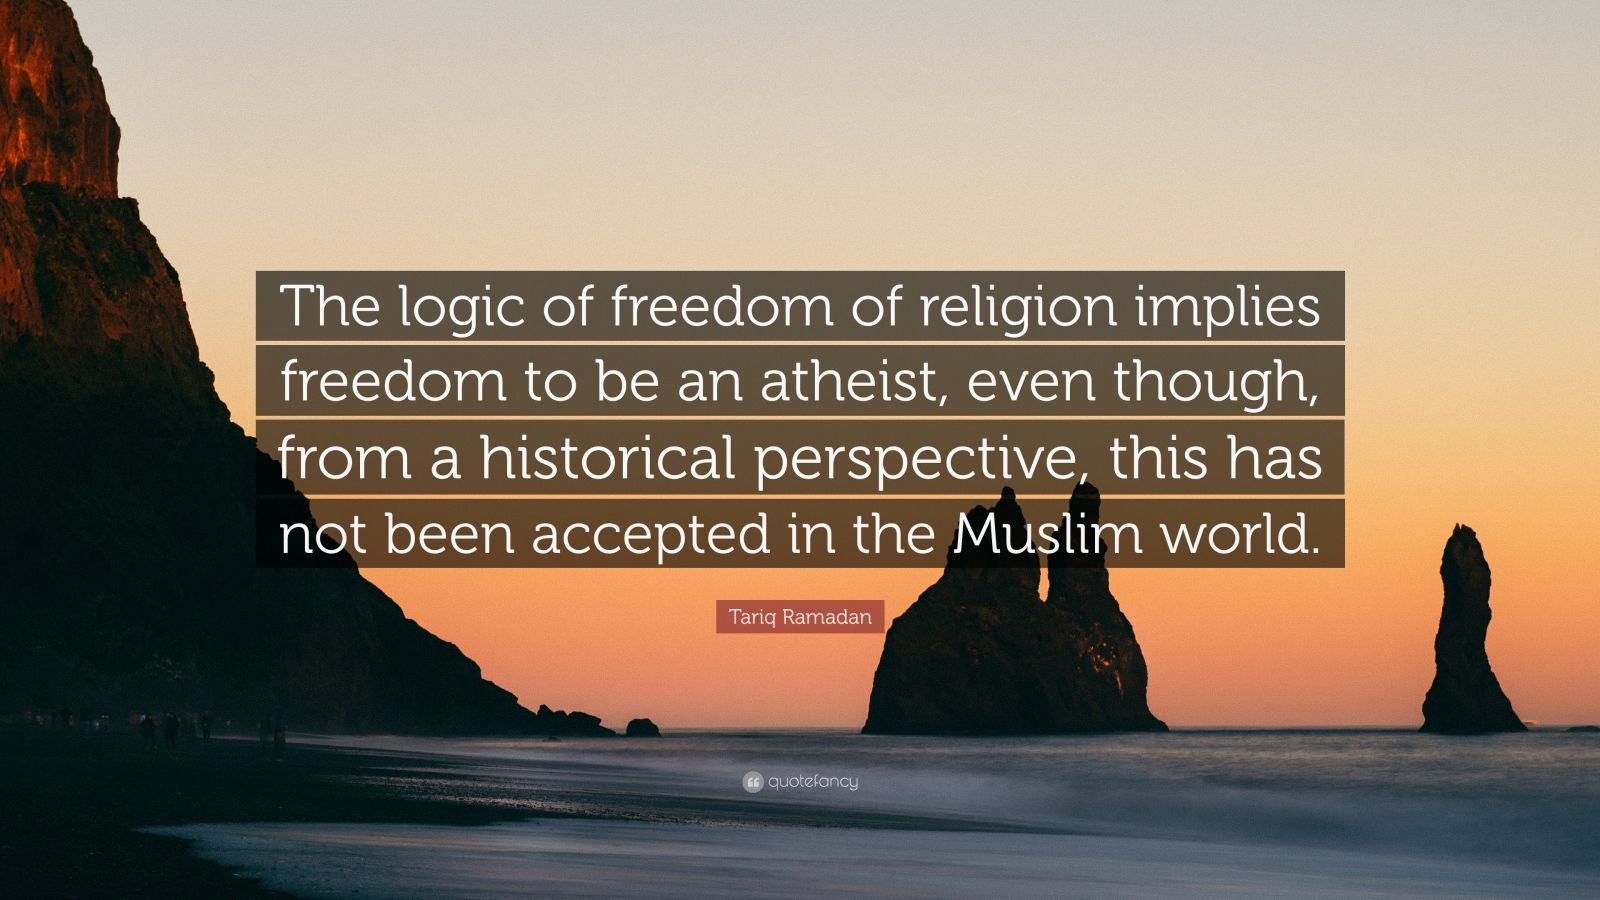 a glimpse at religion from a historical perspective The history of the conflict perspective is quite a rare and popular topic for writing historical perspective new topic conflict perspective on religion.